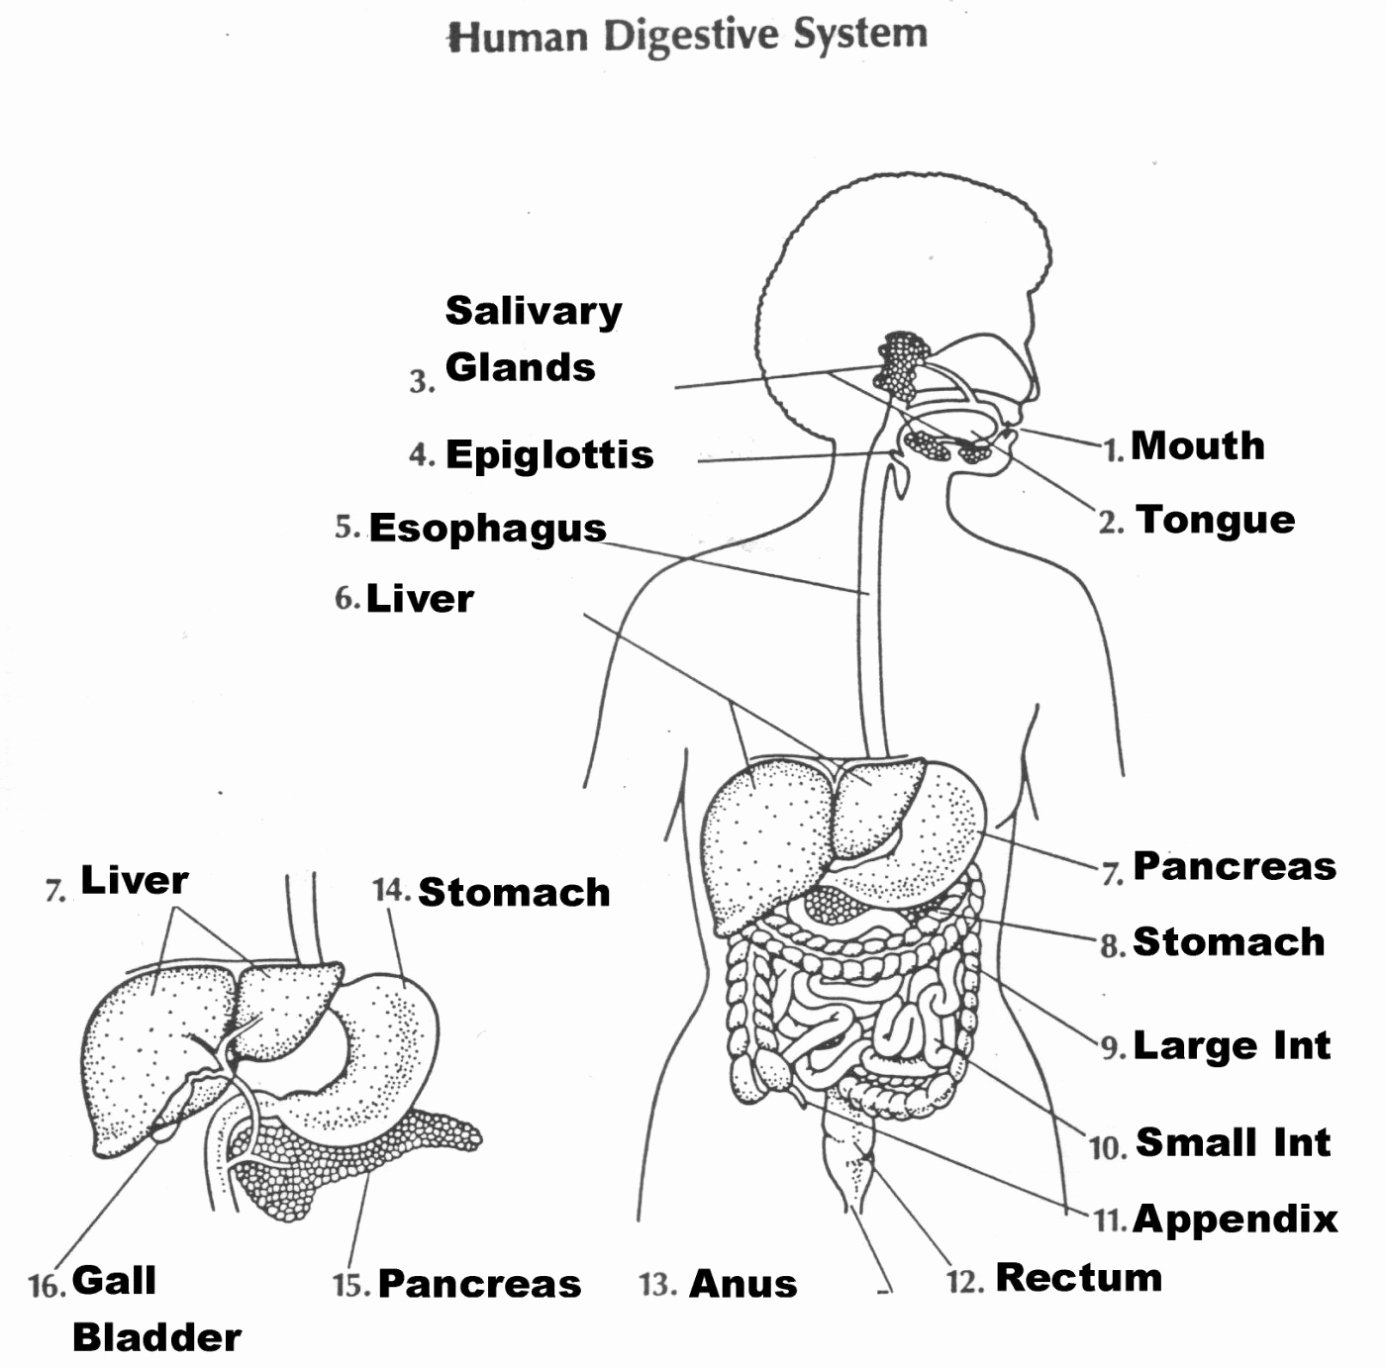 Digestive System Worksheet Pdf Elegant Digestive System Diagram for Kids — Untpikapps